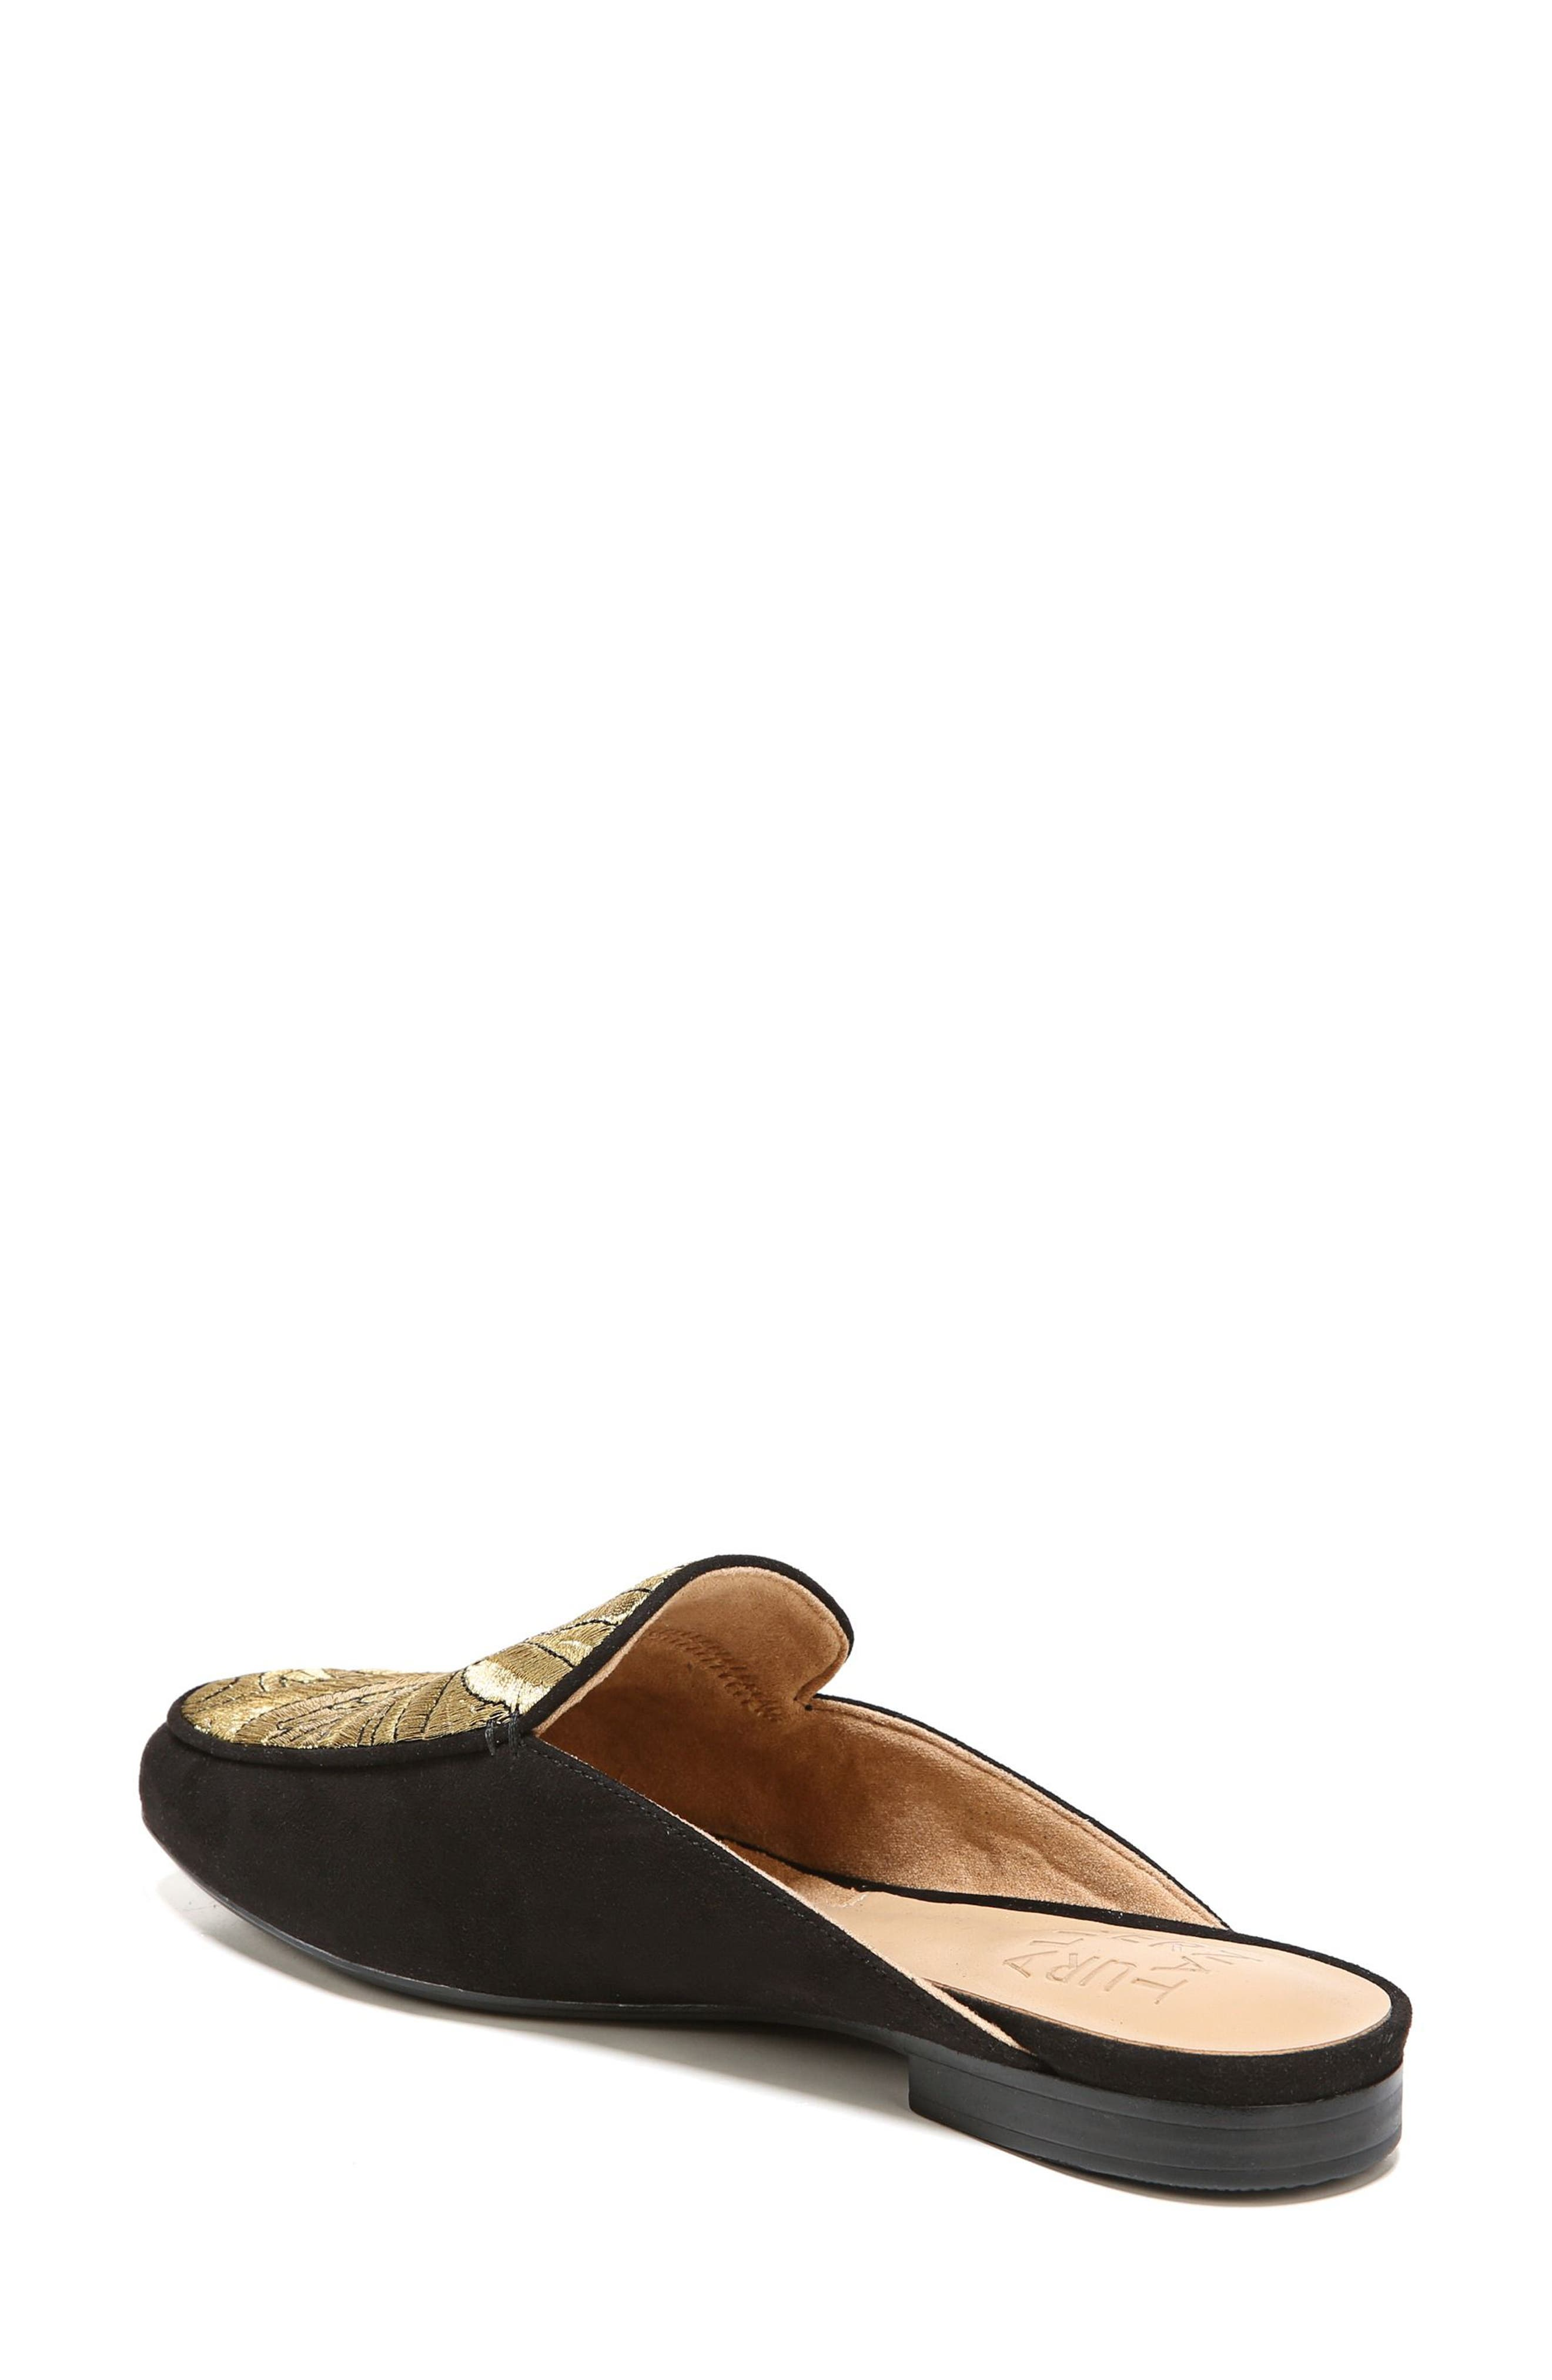 Eden II Embroidered Mule,                             Alternate thumbnail 2, color,                             Black/ Gold Leather